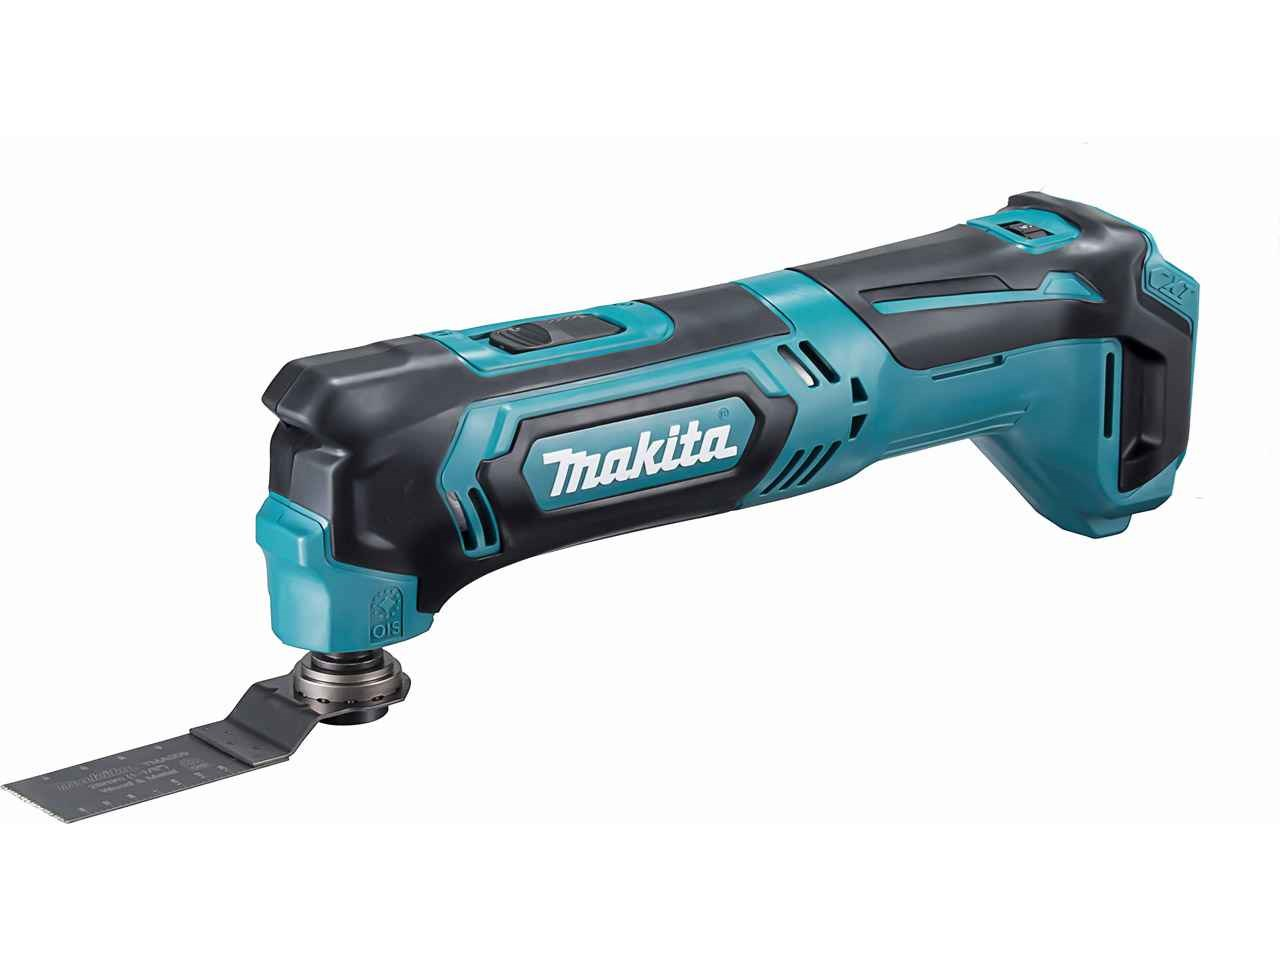 makita tm30dz cxt li ion multi tool bare unit. Black Bedroom Furniture Sets. Home Design Ideas